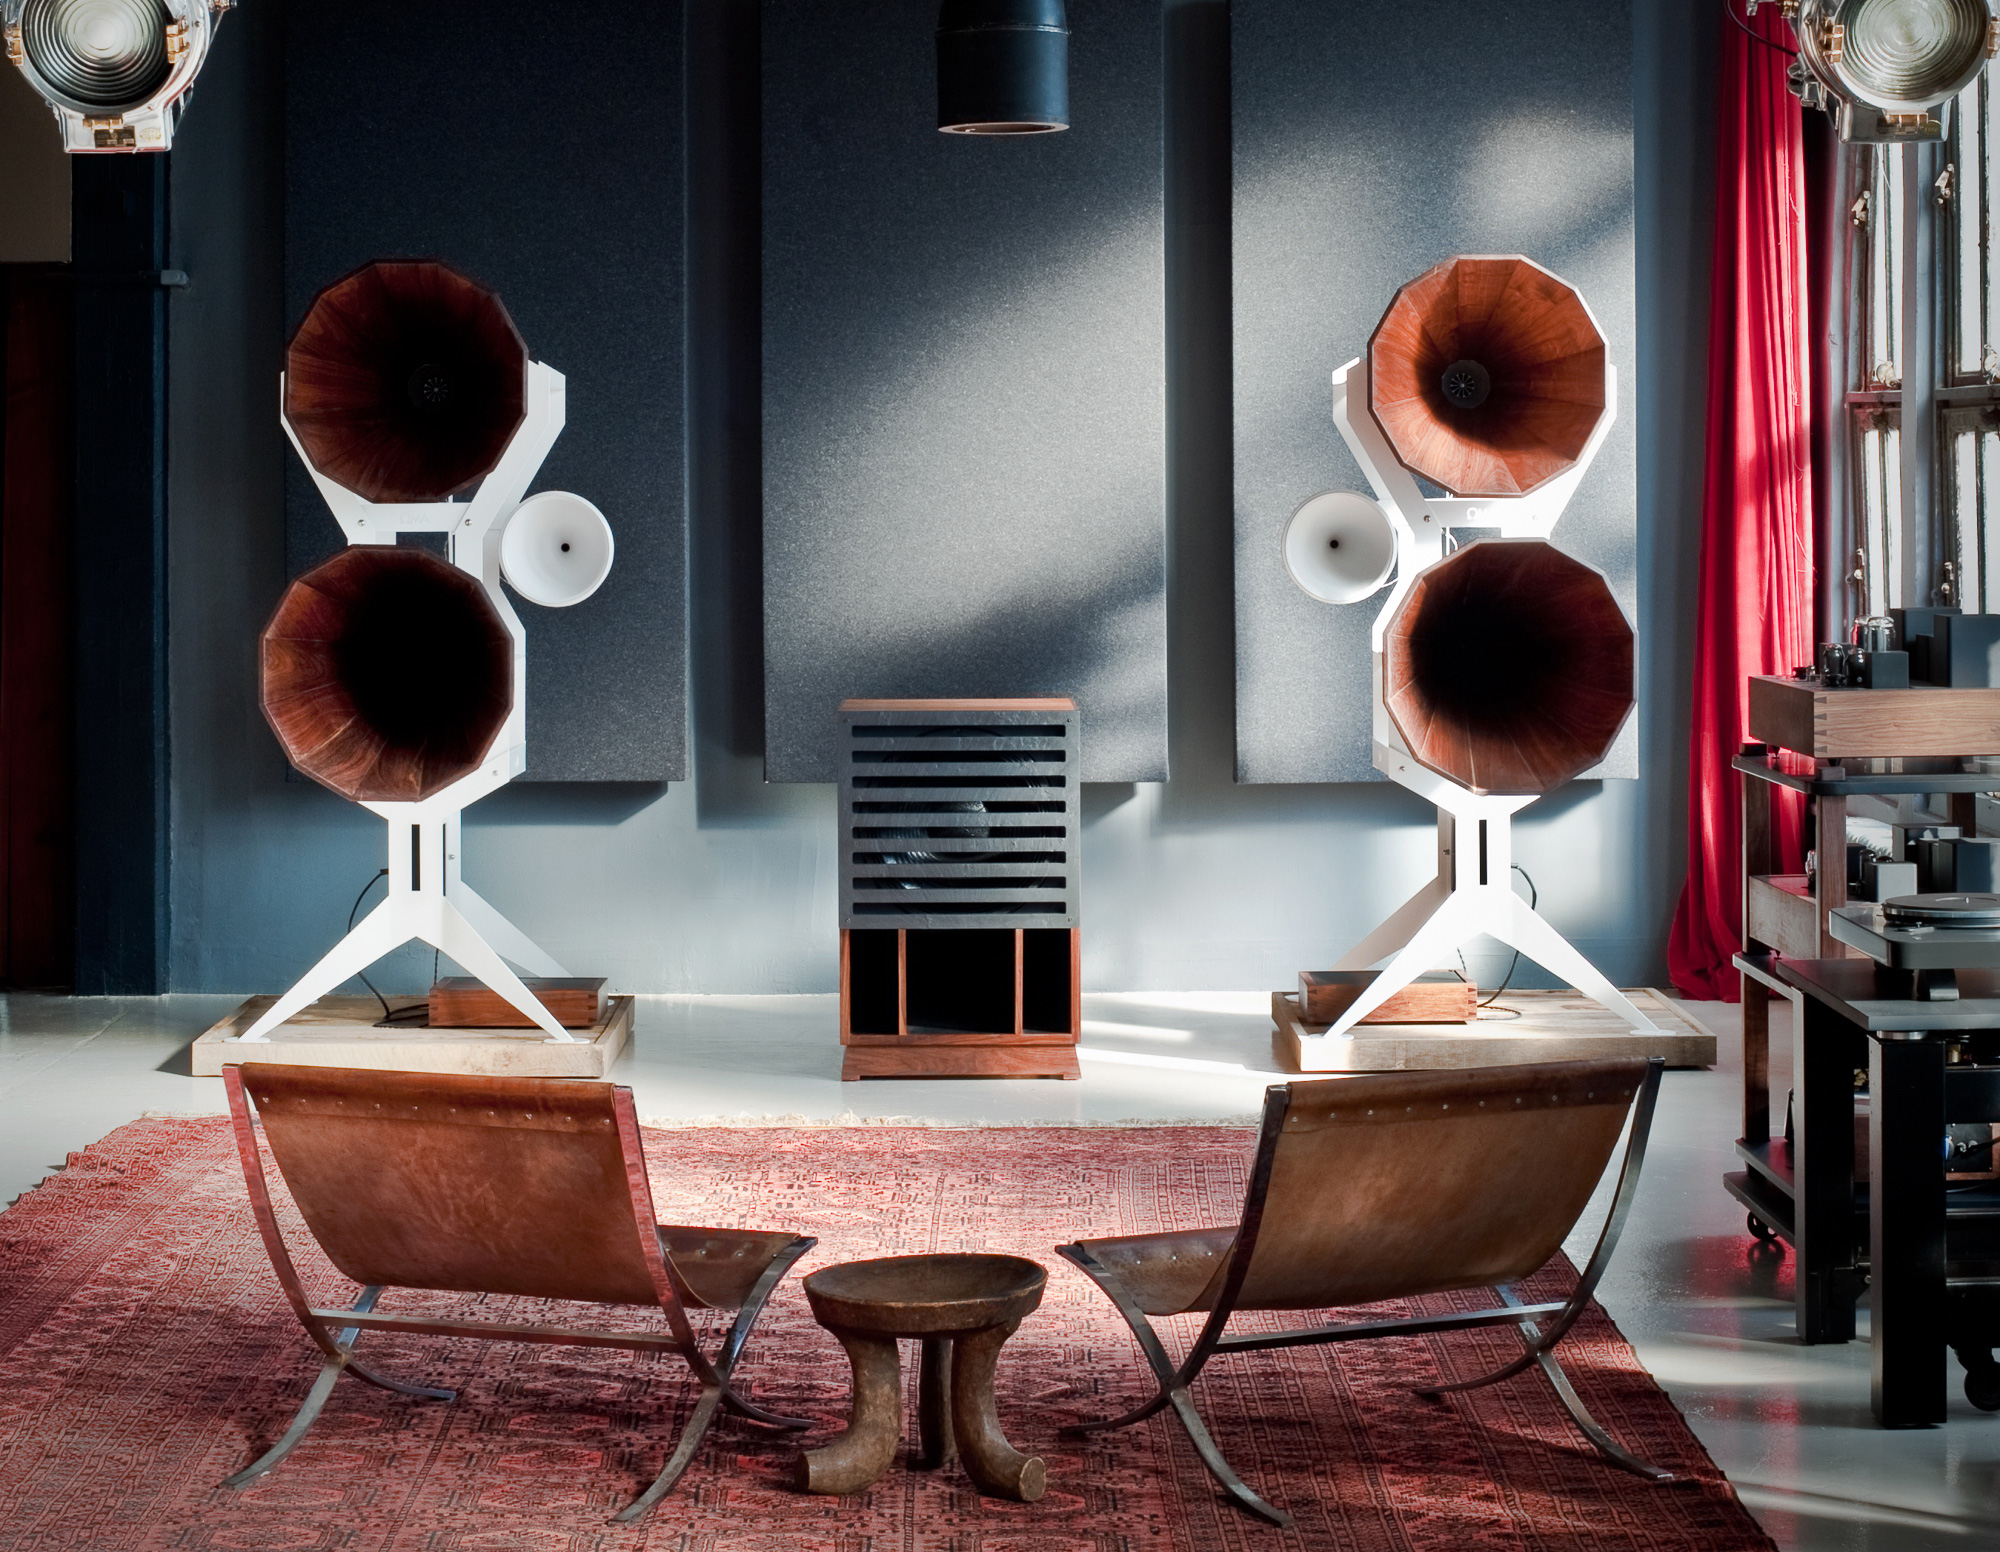 Imperia loudspeakers